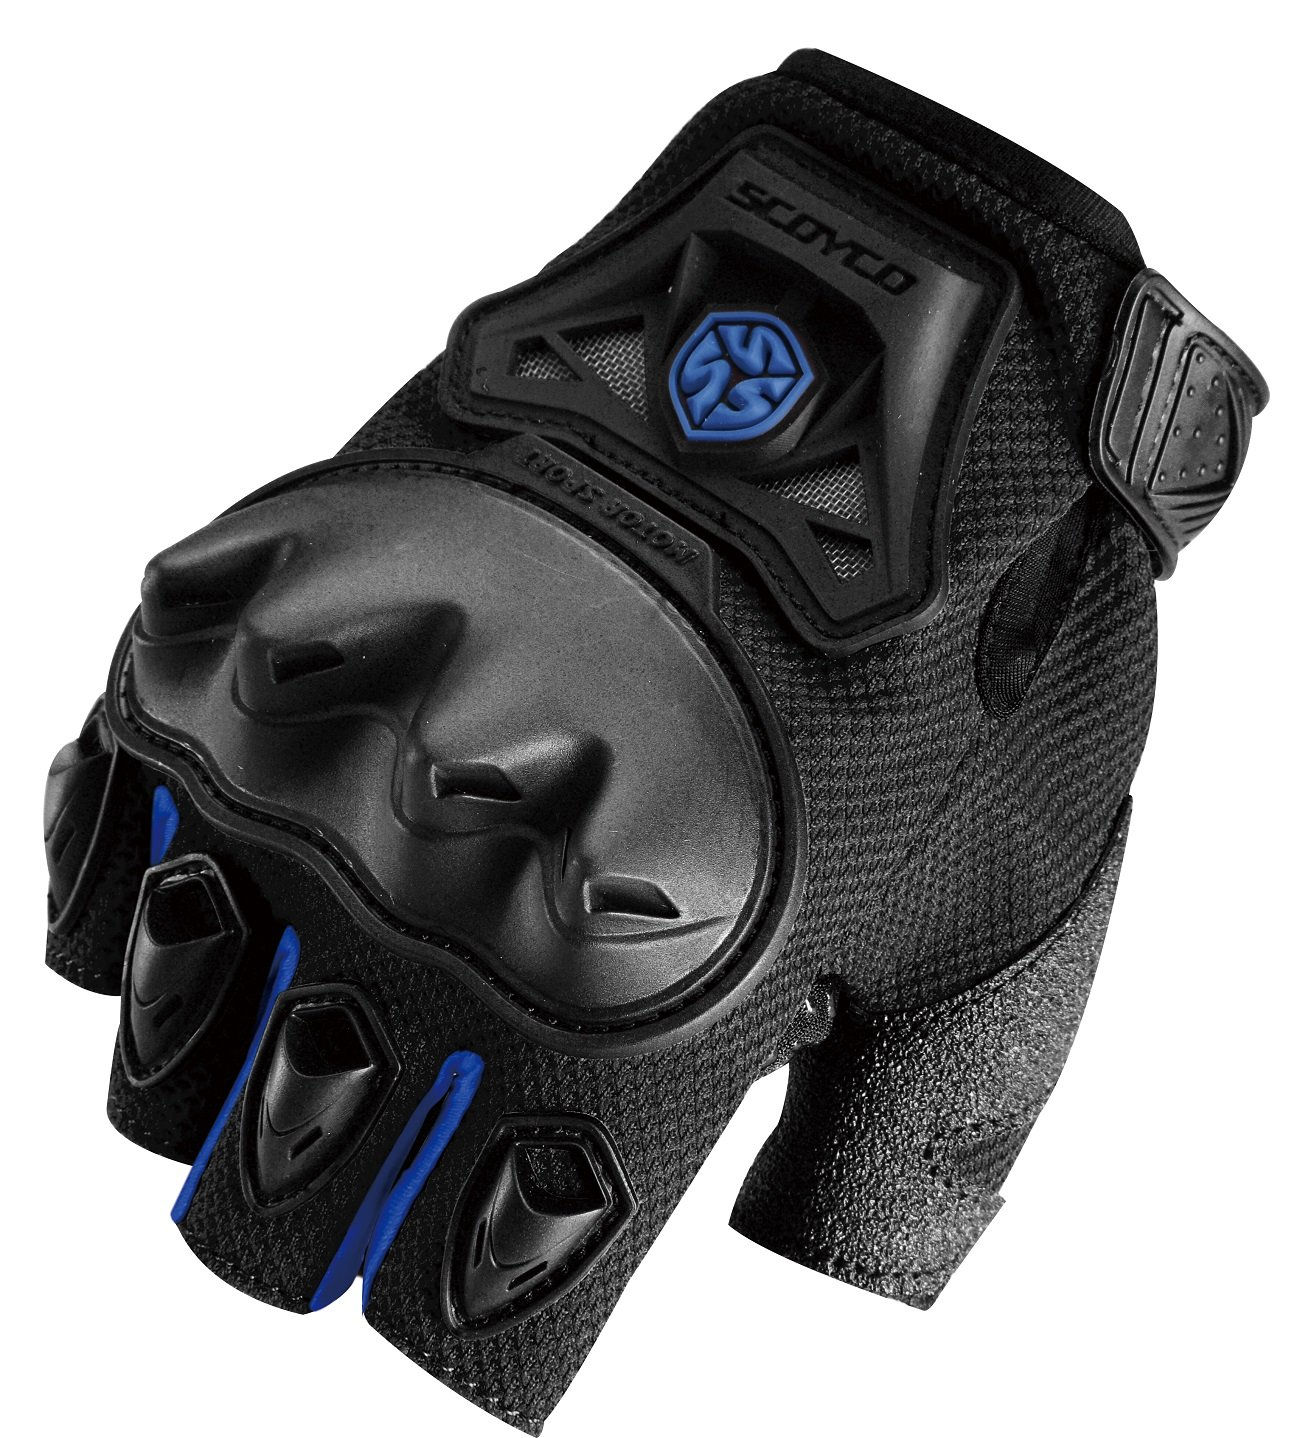 CRAZY AL'S CAMC29D Motorcycle Fingerless Gloves Sports Protective Gear Shock Resistant Padded Fingerless Safety Breathable Motorcycle Gloves Black Red Blue Green M/L/XL (Blue, L) by Crazy Al's (Image #1)